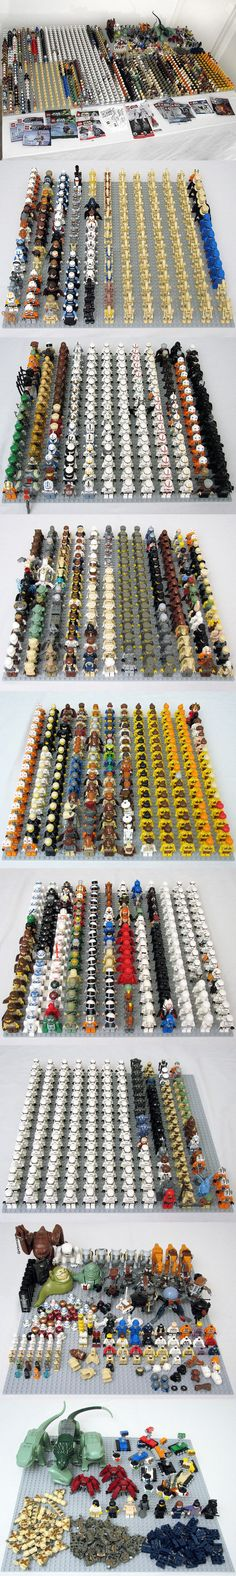 HUGE Star Wars minifigure (1220) collection! #StarWars #LEGO #minifigure This is also a good idea for showing off a collection of mini figures!